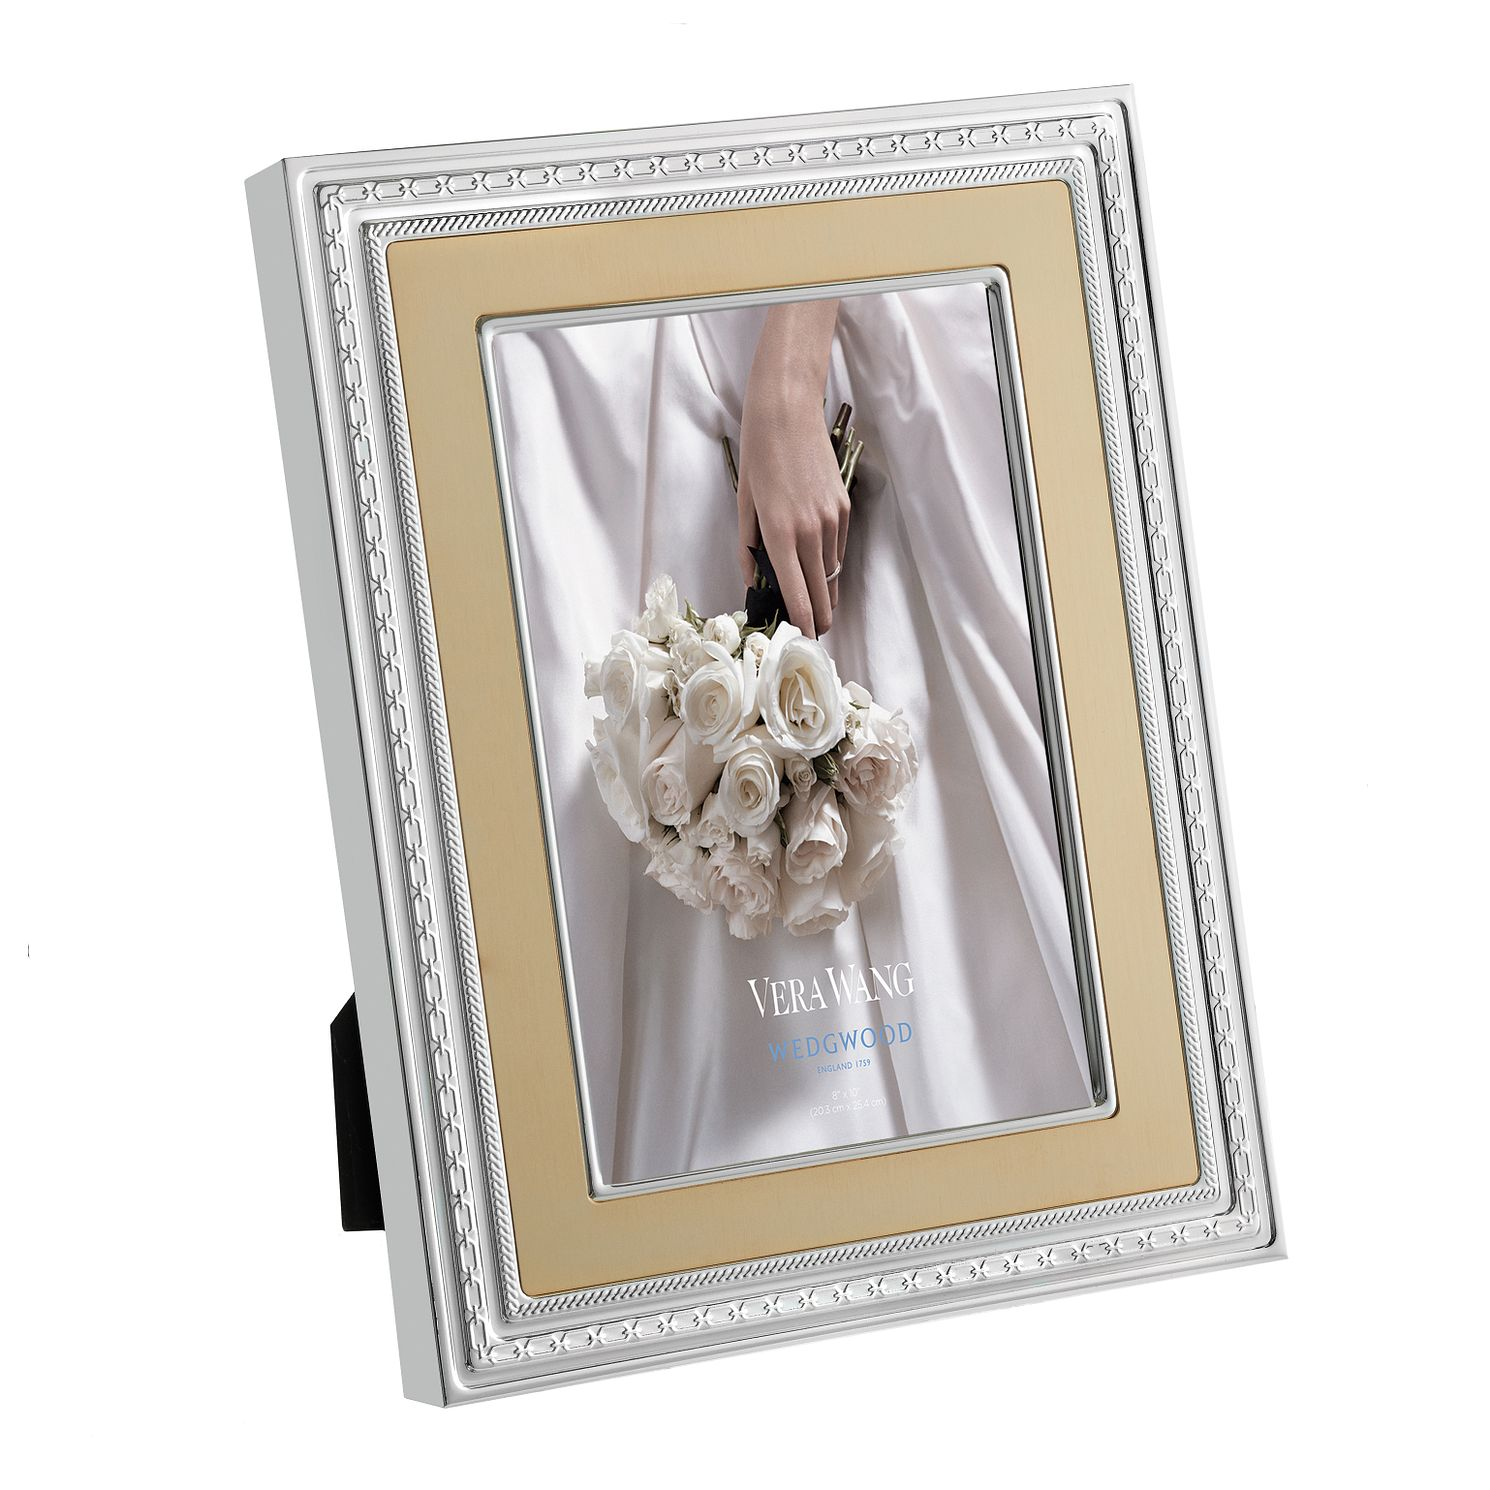 Wedgwood With Love Gold Photo Frame 8X10 - Product number 2622491